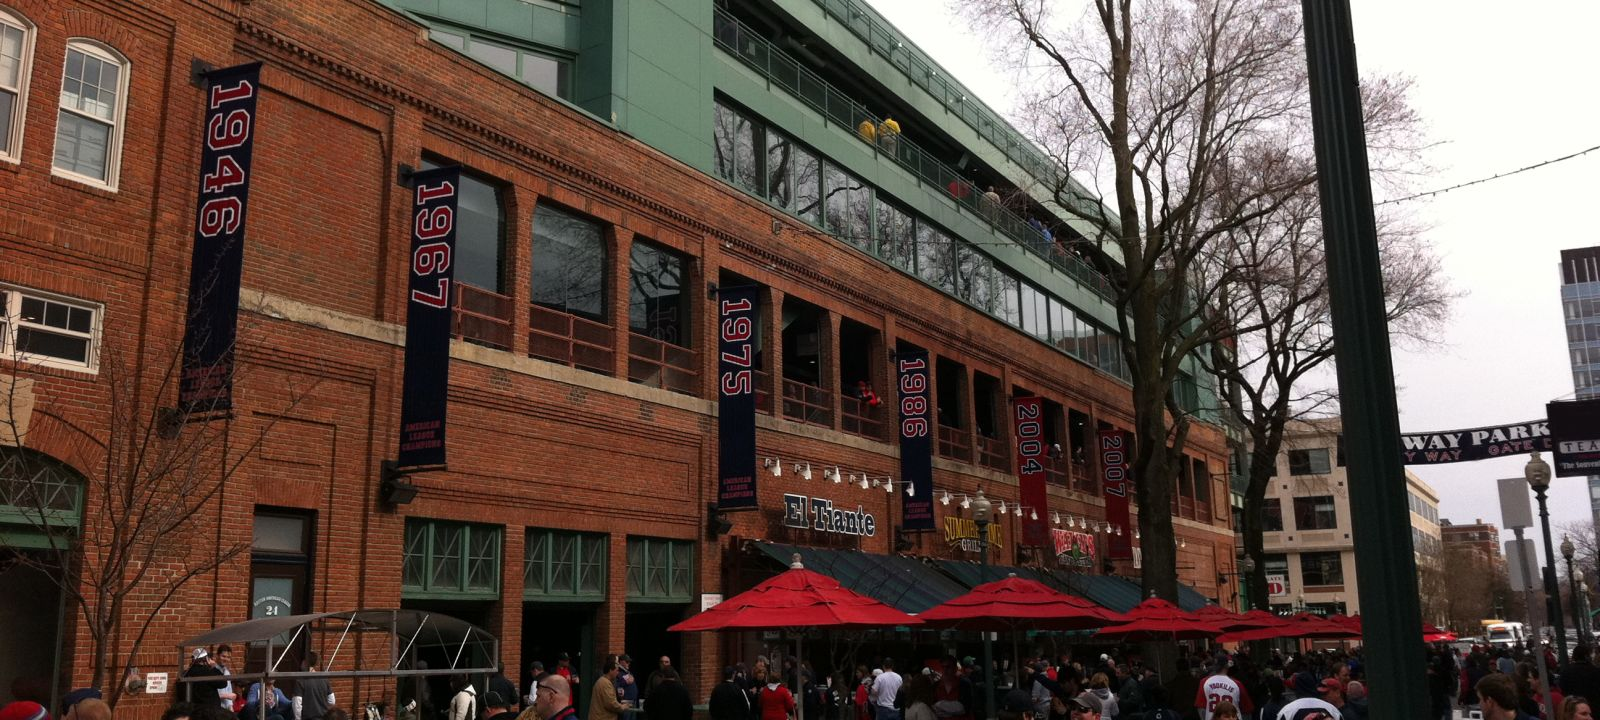 Outside Fenway Park, near The Colonnade Hotel